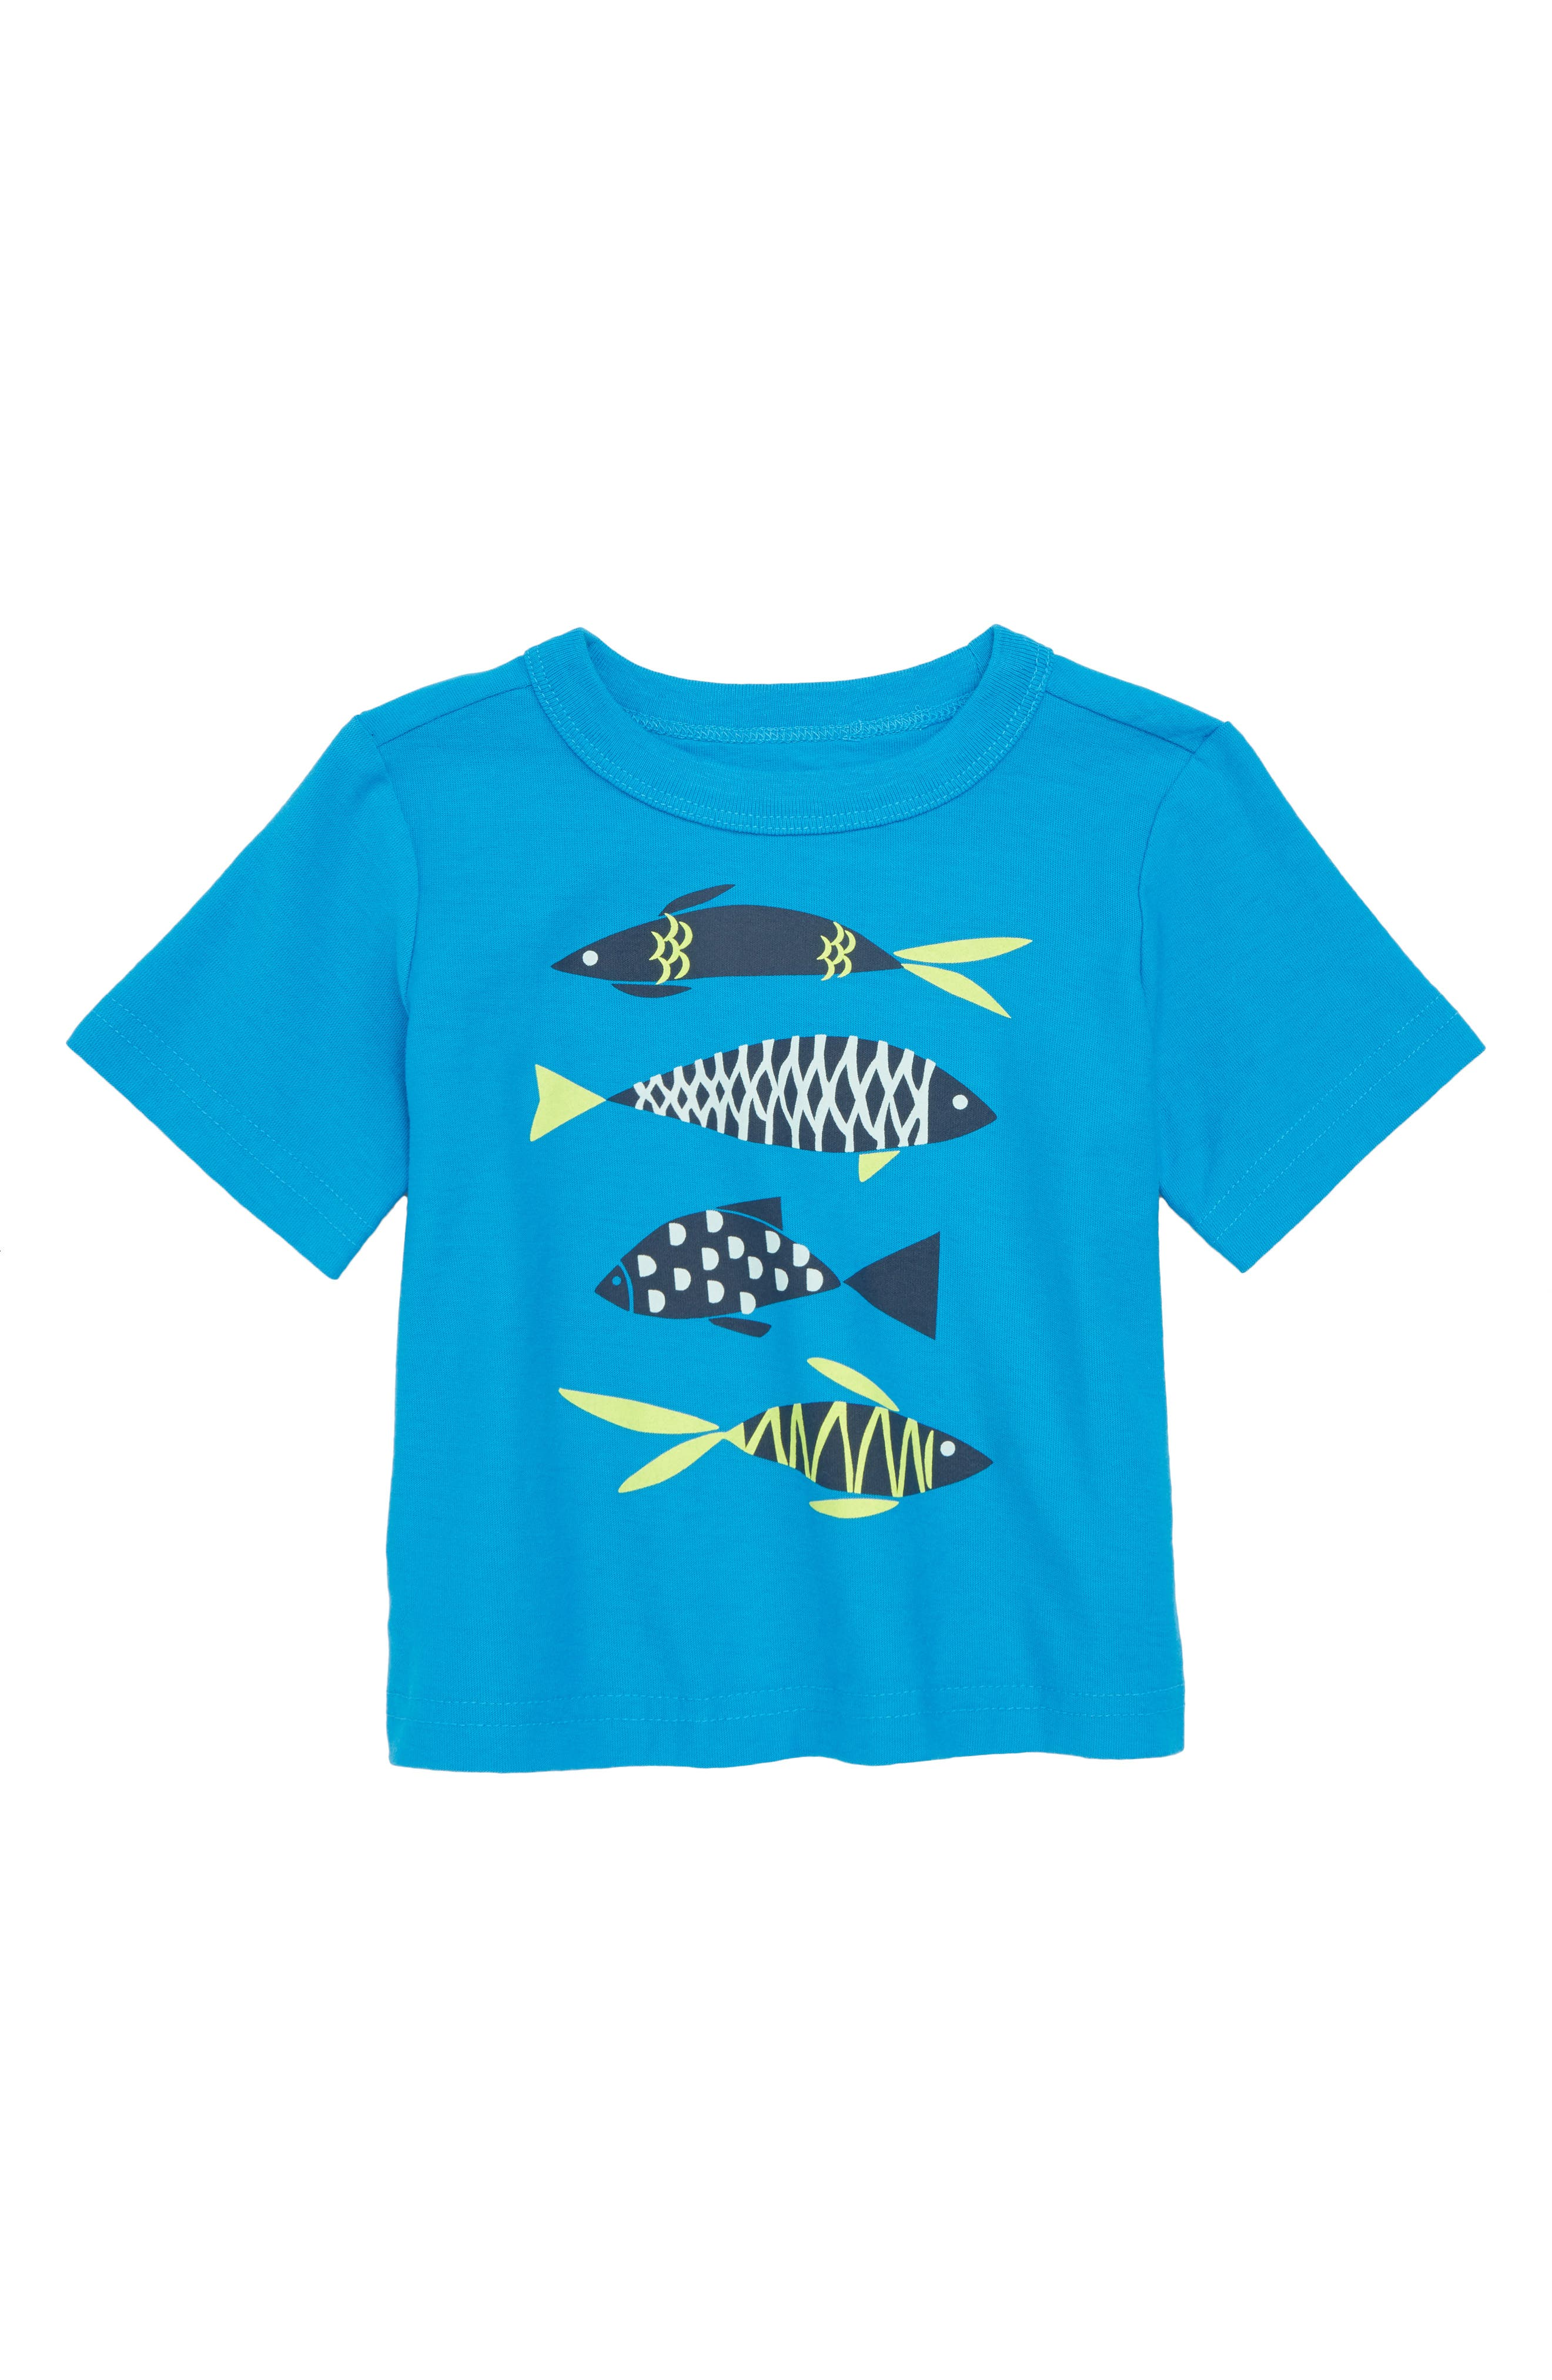 School of Fish Graphic T-Shirt,                         Main,                         color, 475